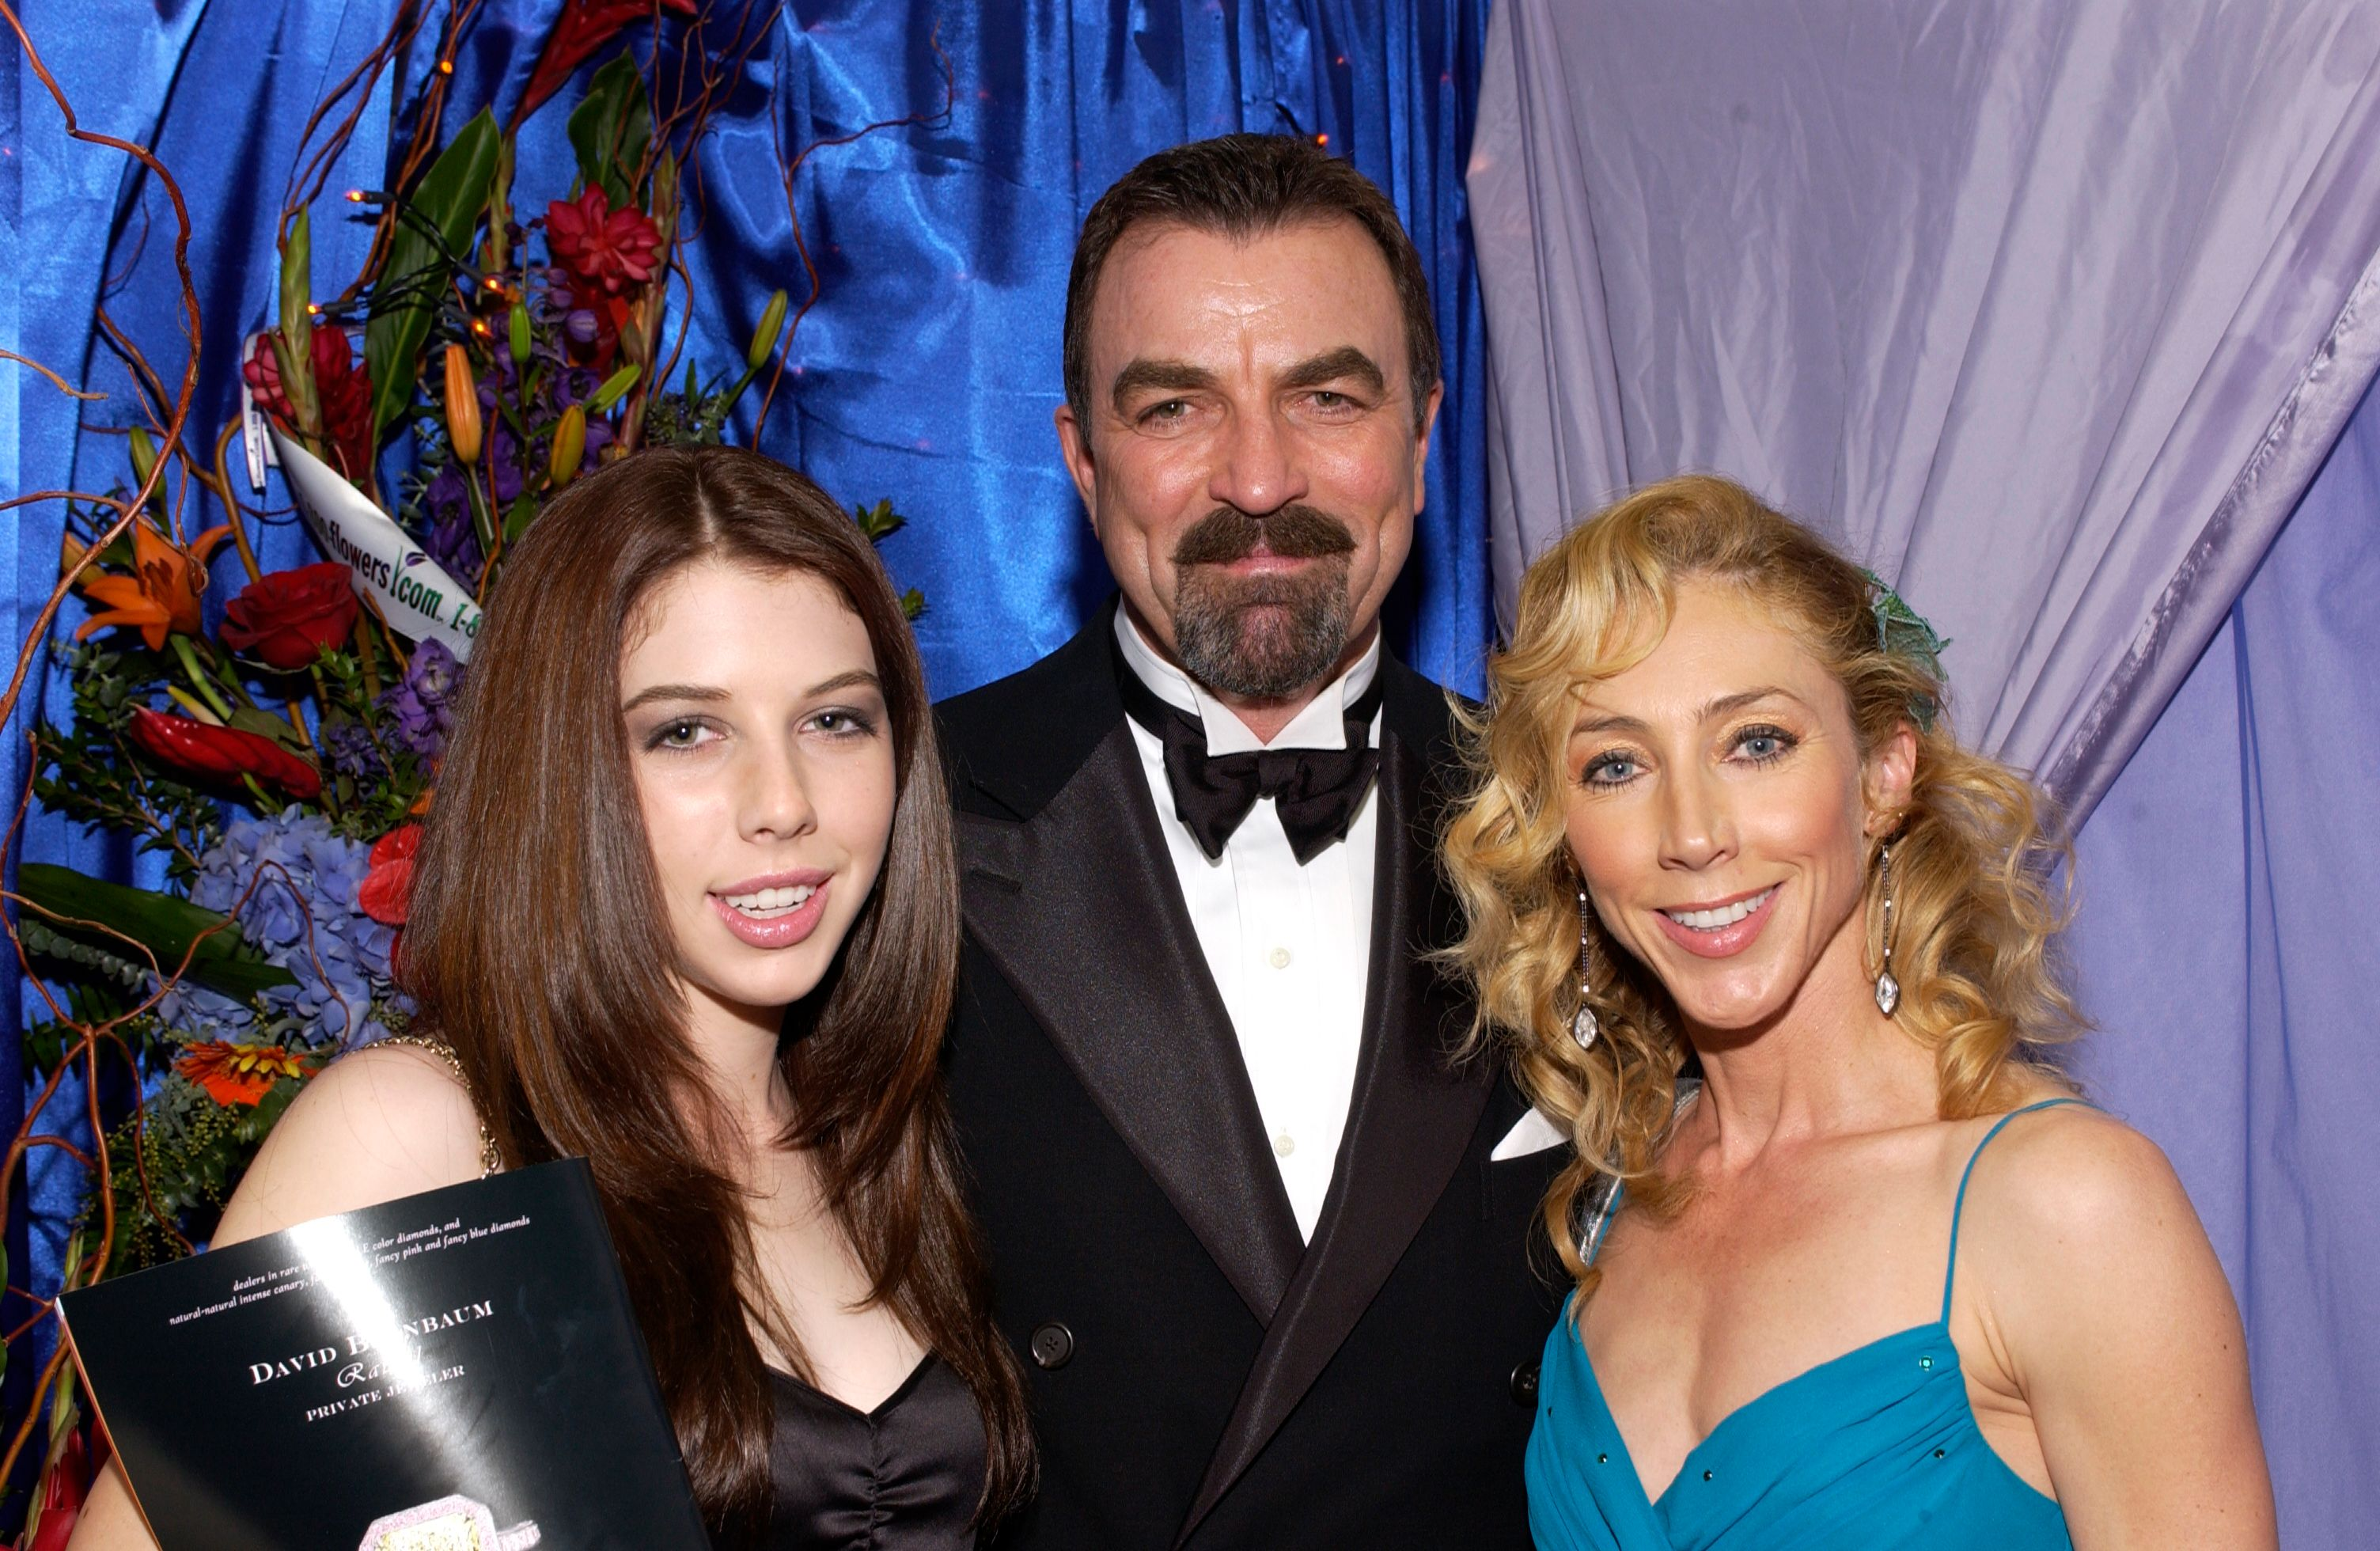 Tom Selleck, daugher Hannah and wife Jillie Mack at the Distinctive Assets Gift Lounge during the People?s Choice Awards on January 9, 2005 in Pasadena, California Photo: Getty Images